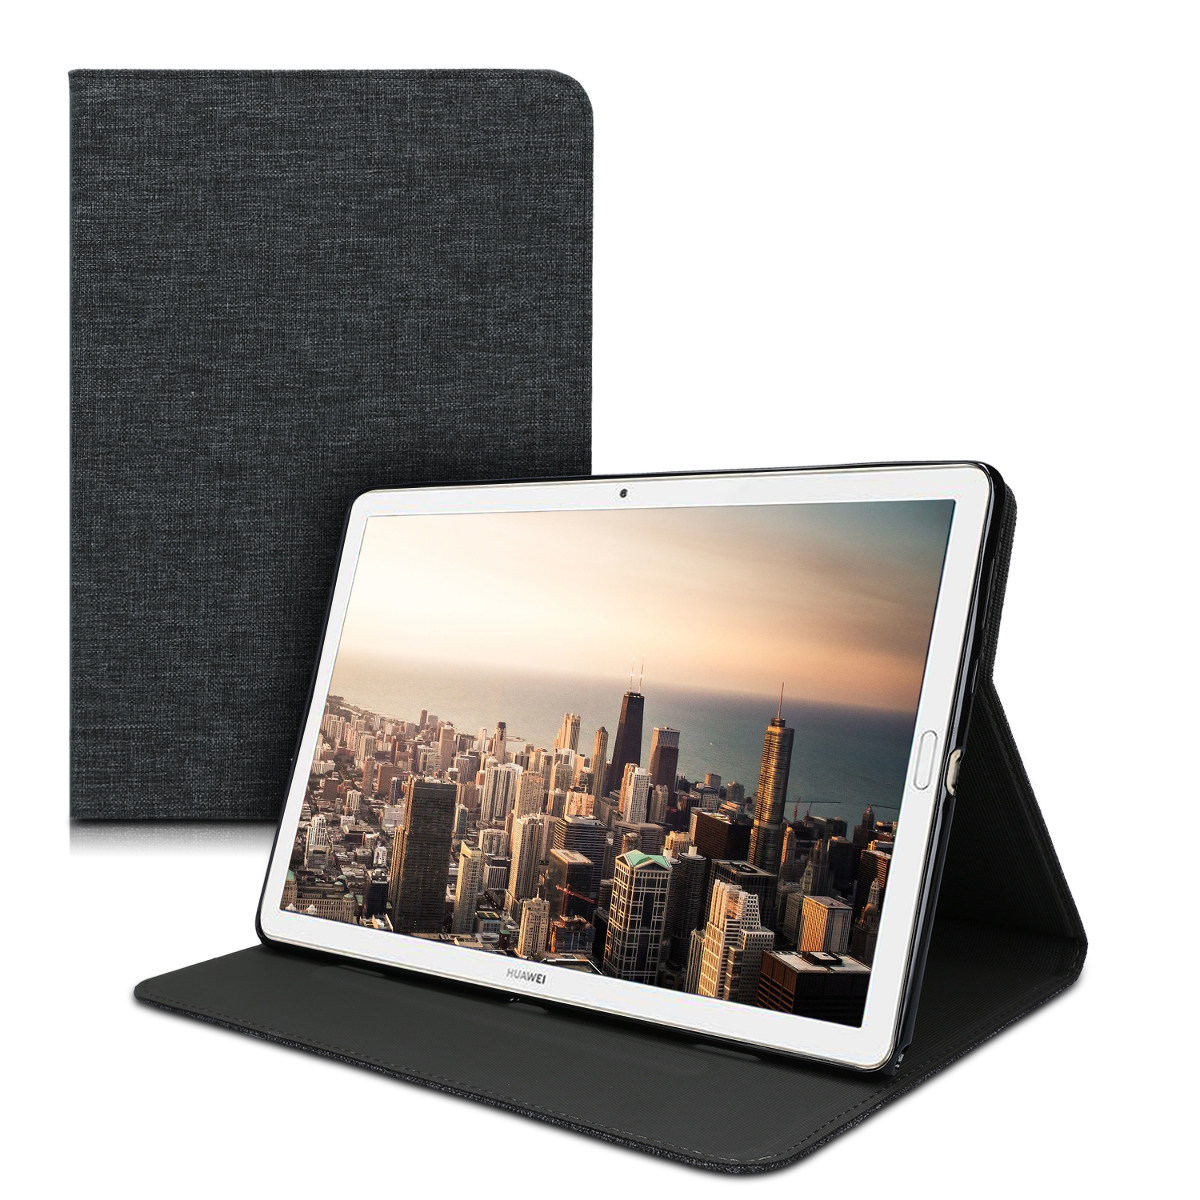 KW Θήκη Huawei MediaPad M6 10.8'' - Protective Tablet Cover with Stand Feature - Dark Grey (49331.01)